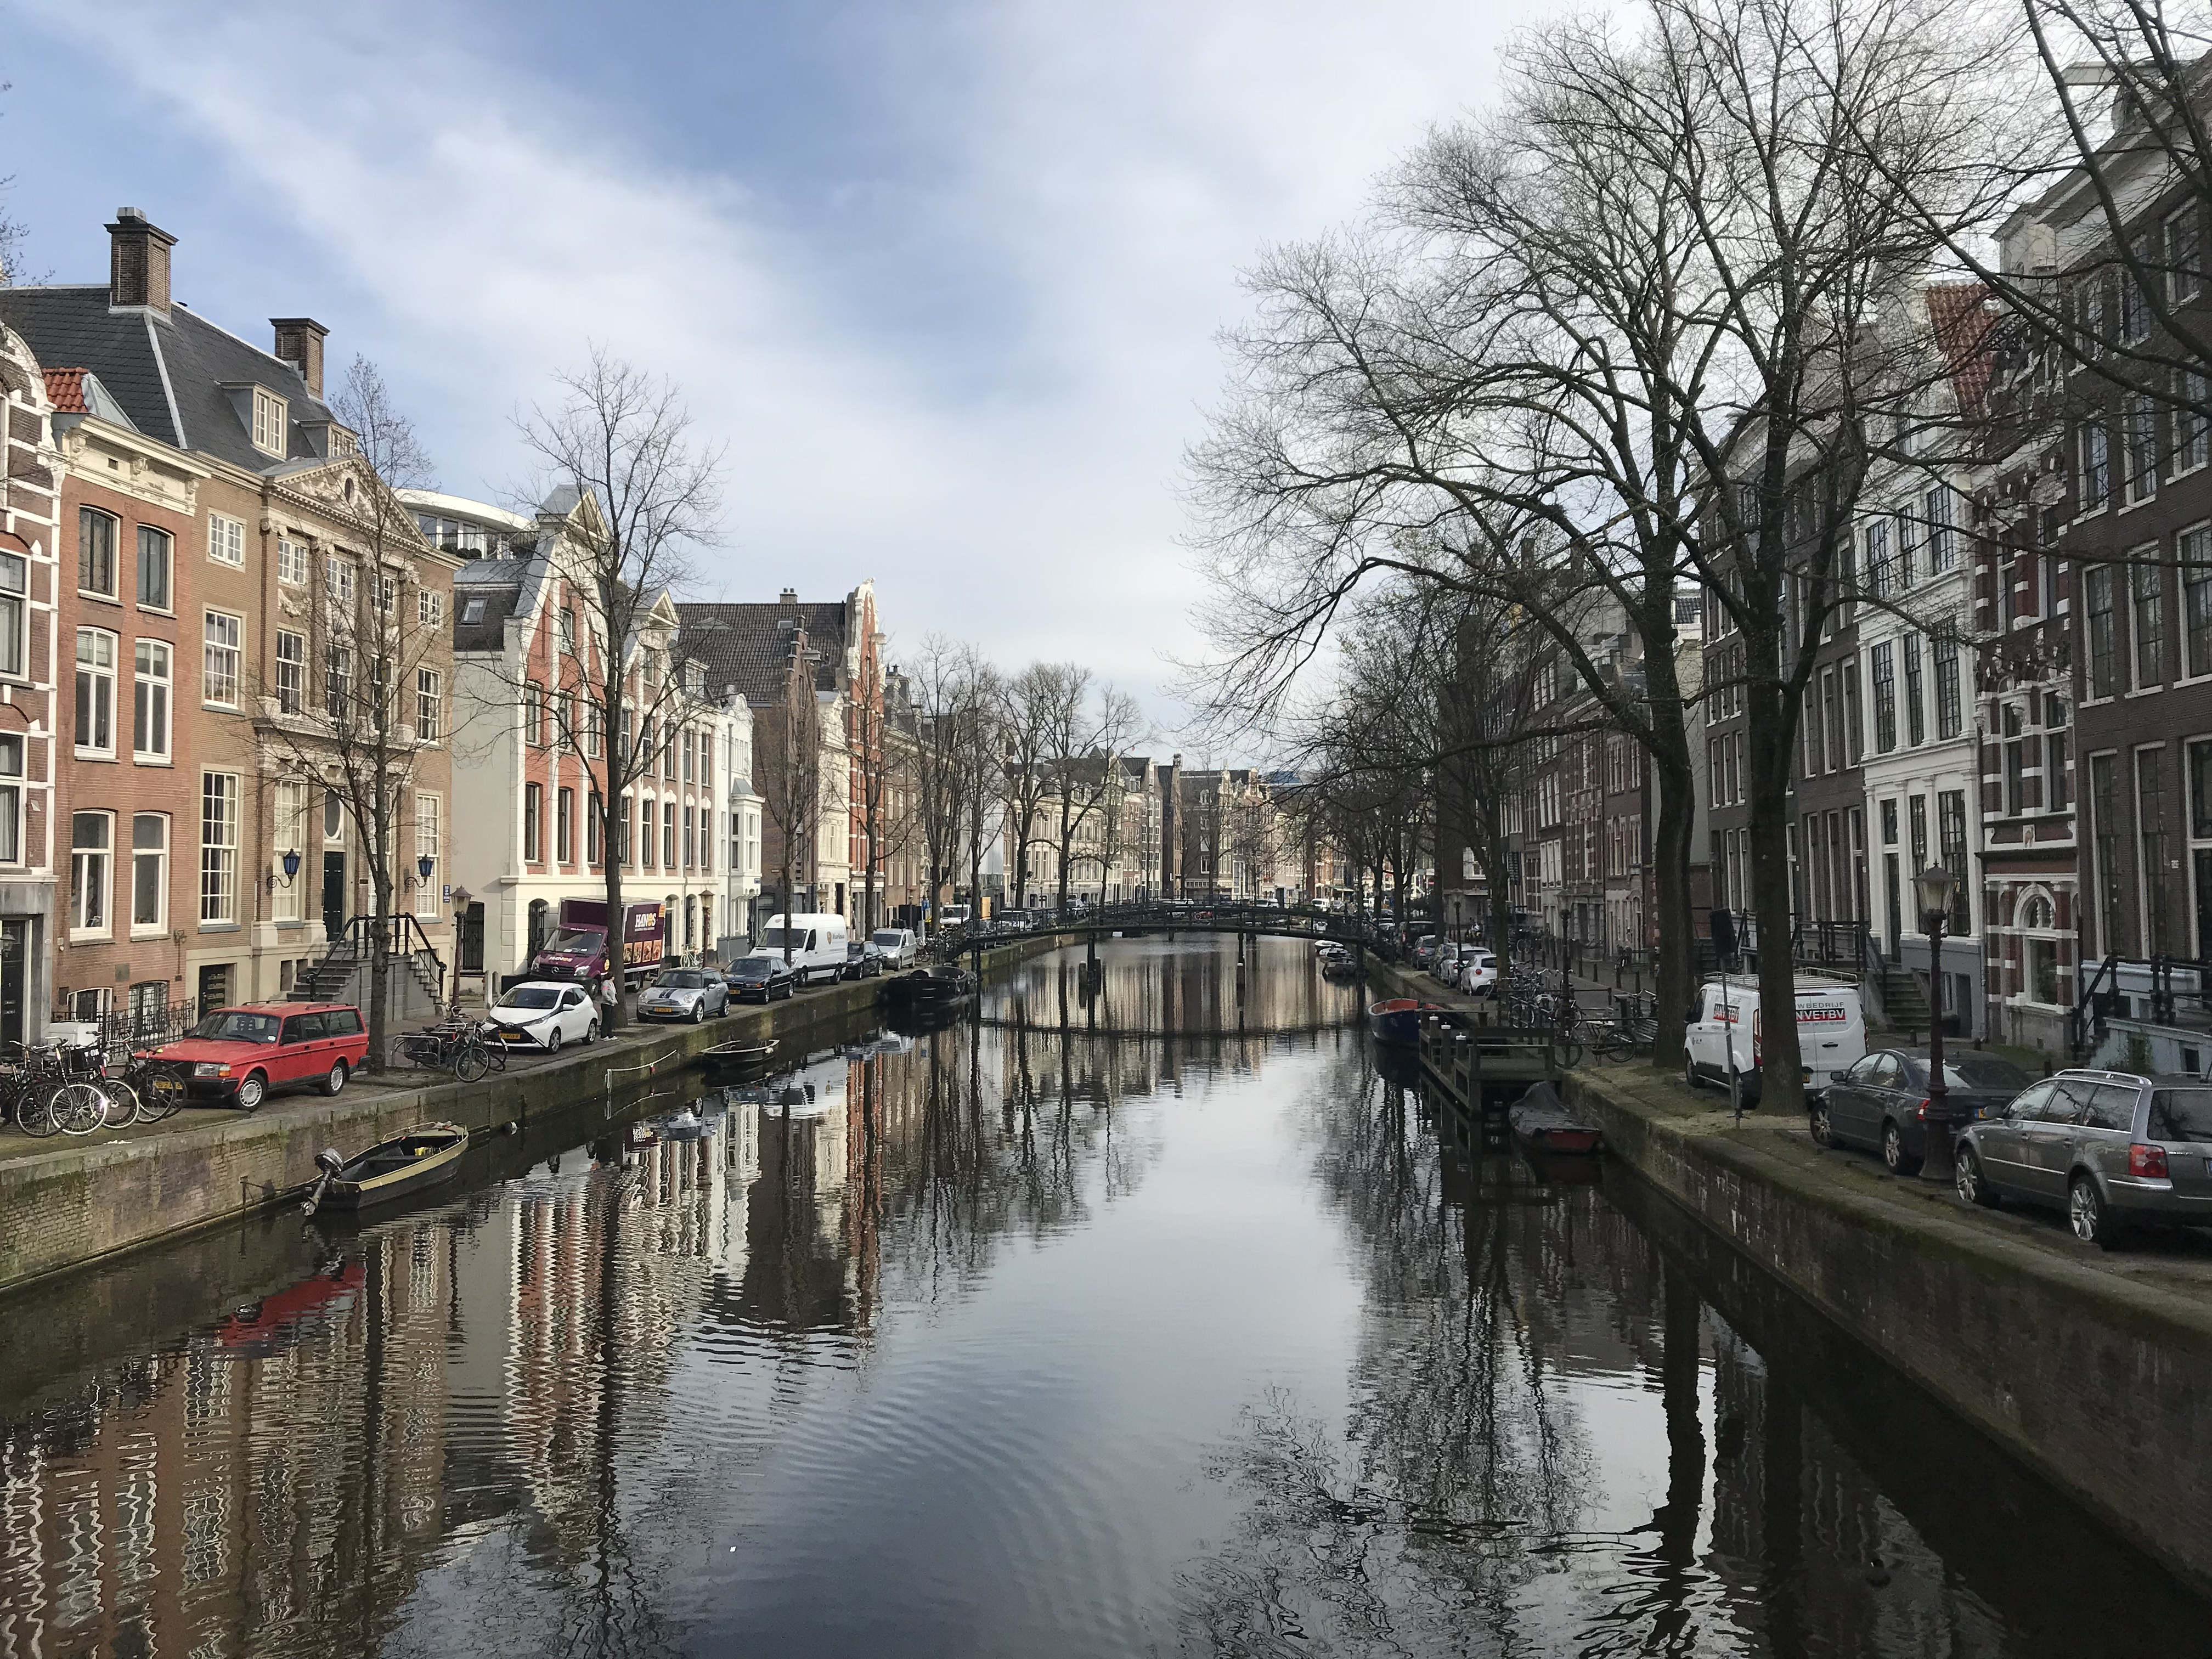 CAPAStudyAbroad_Dublin_Spring2018_From Brandon Mooney - A Canal with Reflection in Amsterdam